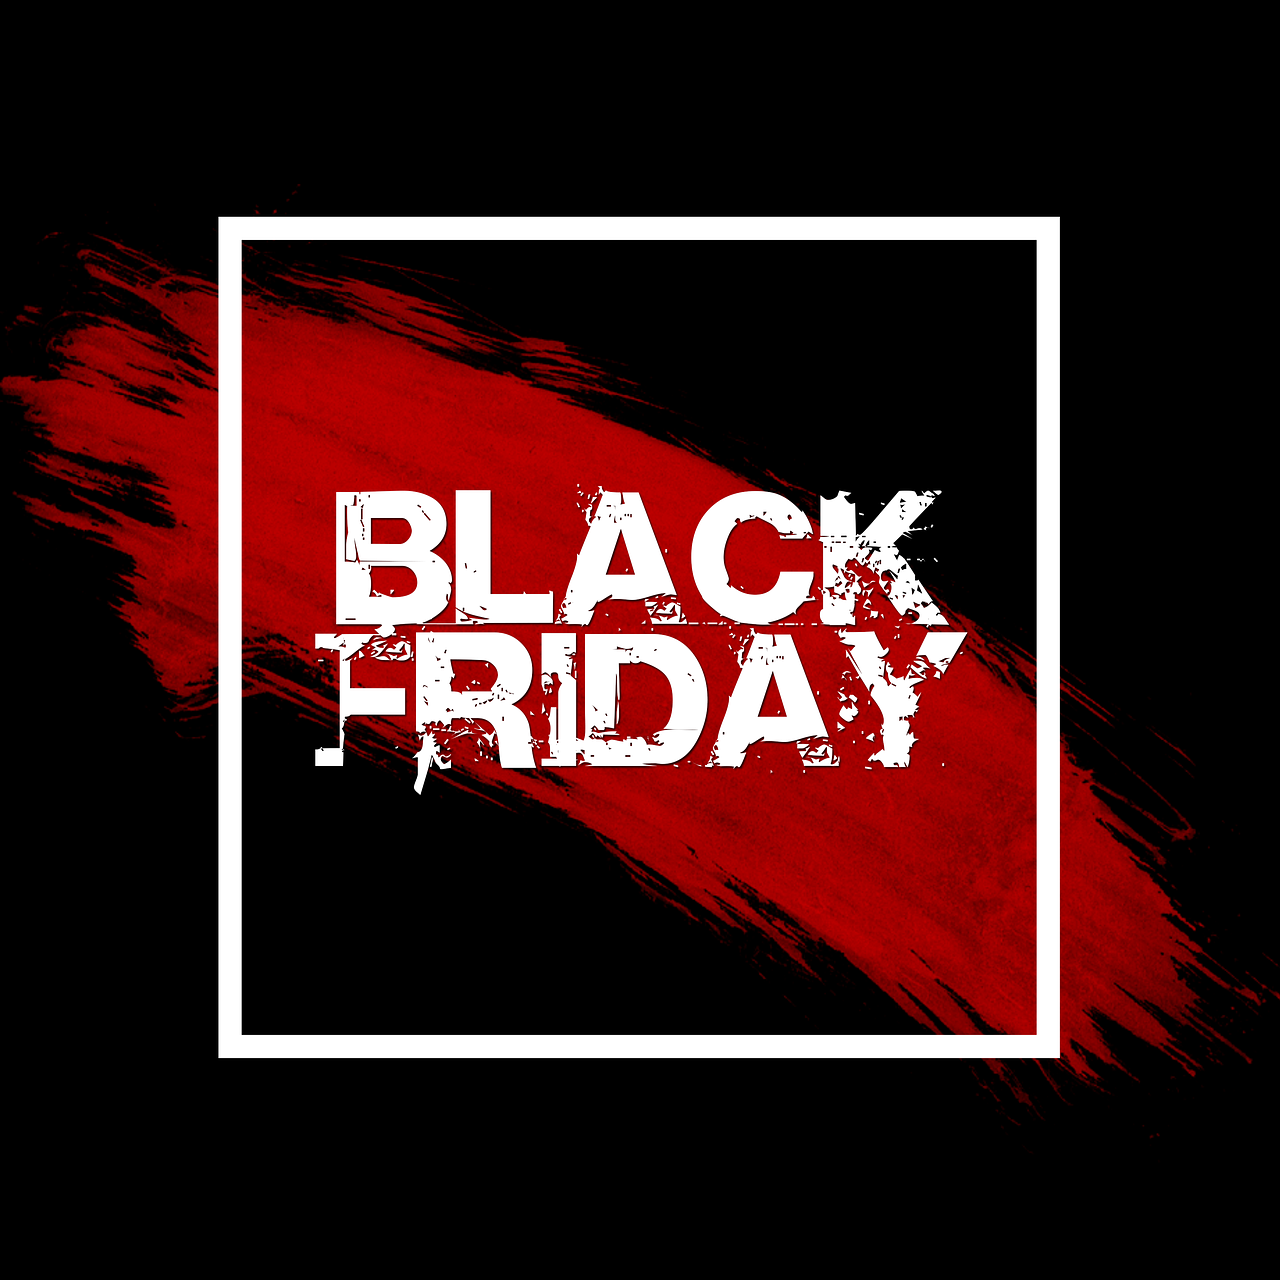 black friday 2901748 1280